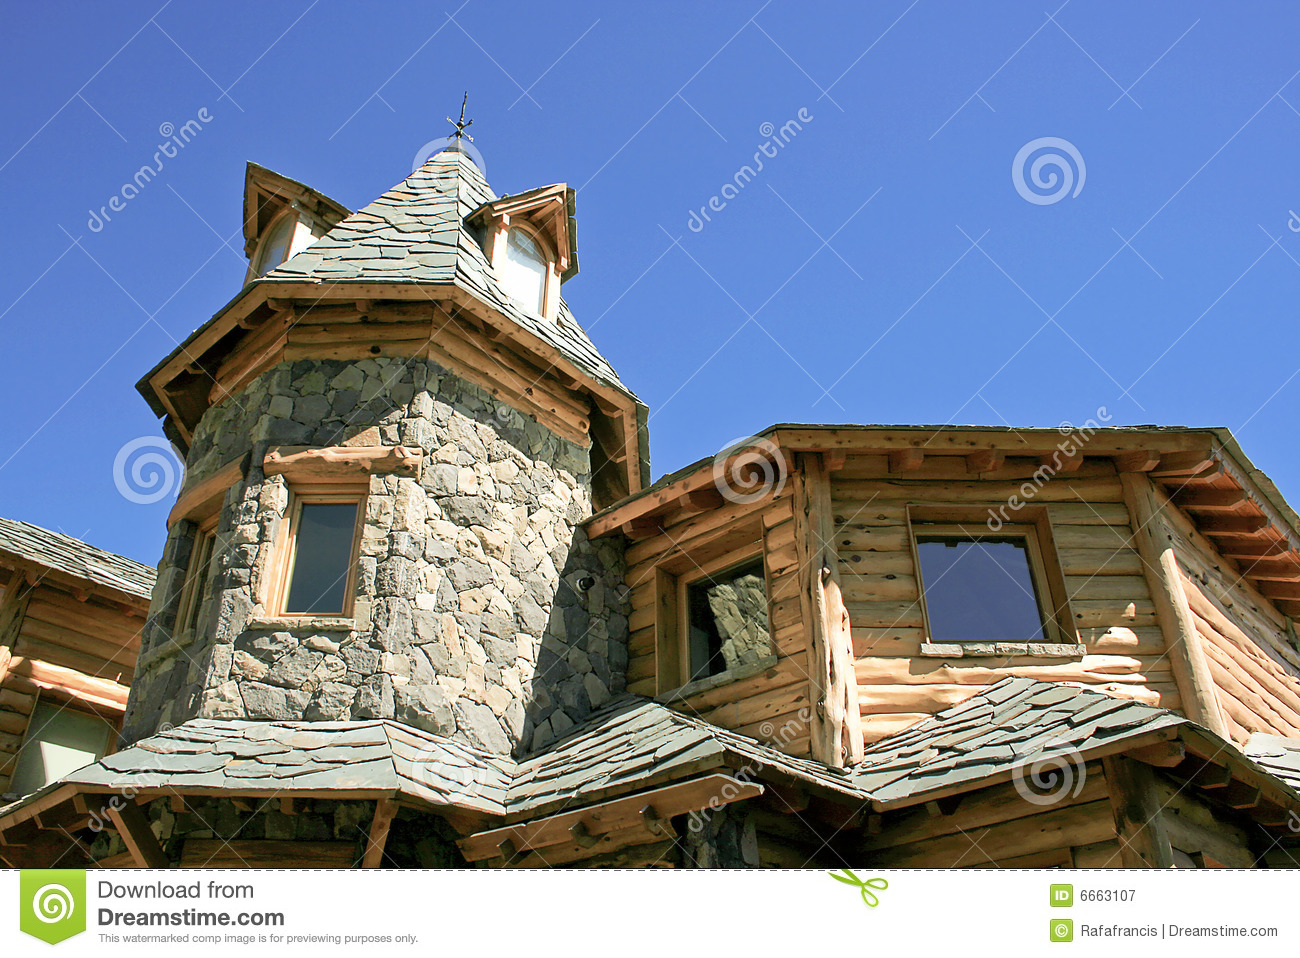 Unusual stone and timber house royalty free stock for Stone and timber homes